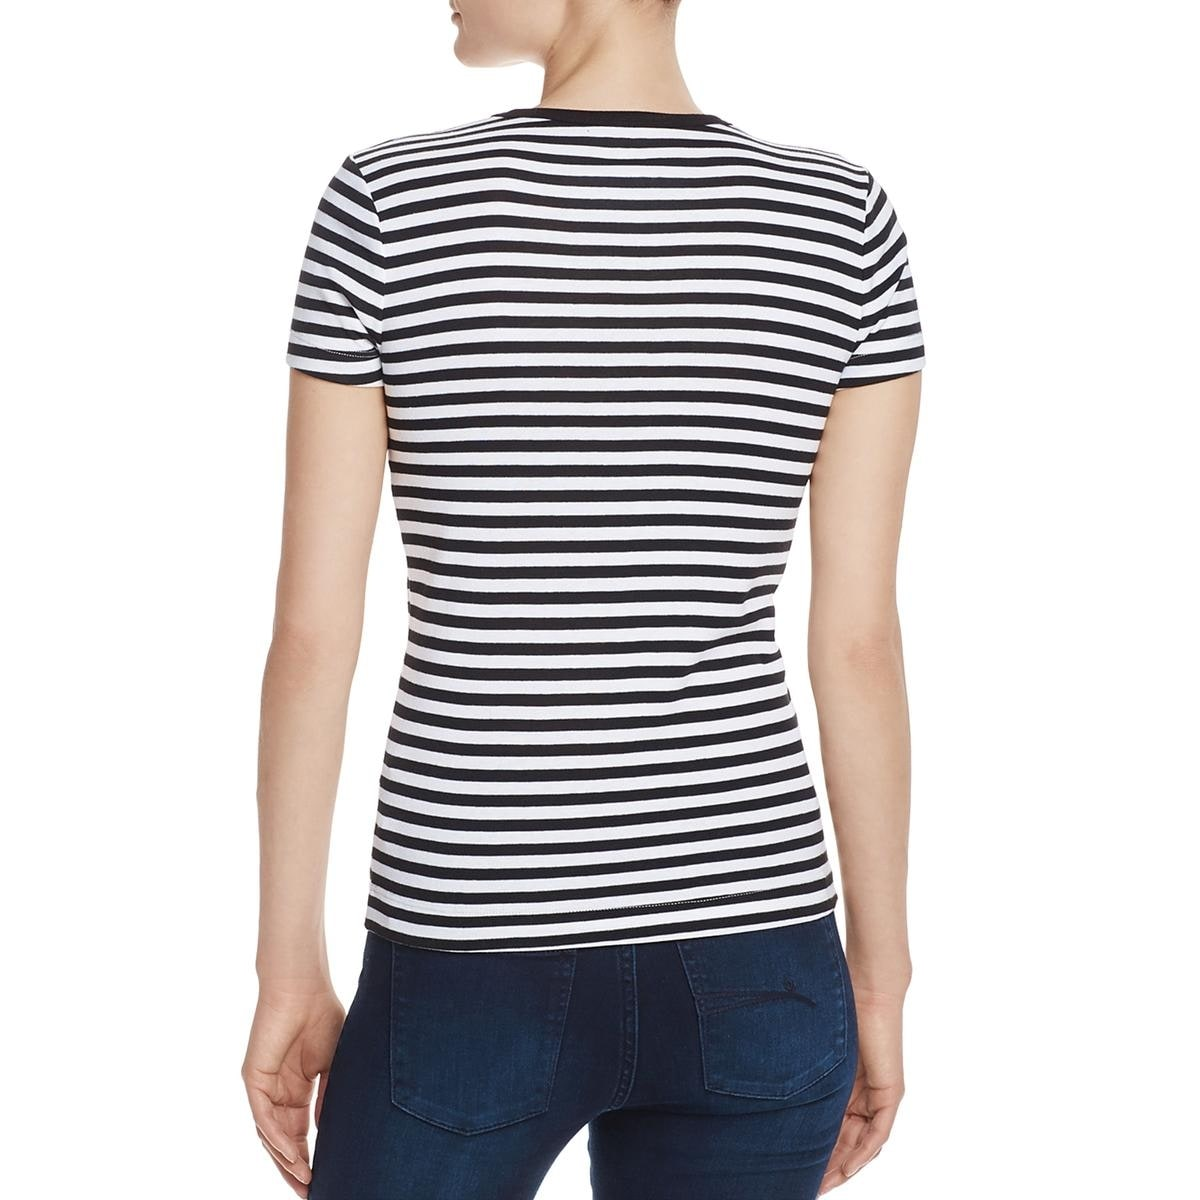 35a95de4 Shop Three Dots Womens Kennedy T-Shirt Striped Short Sleeve - Free Shipping  On Orders Over $45 - Overstock - 22817303